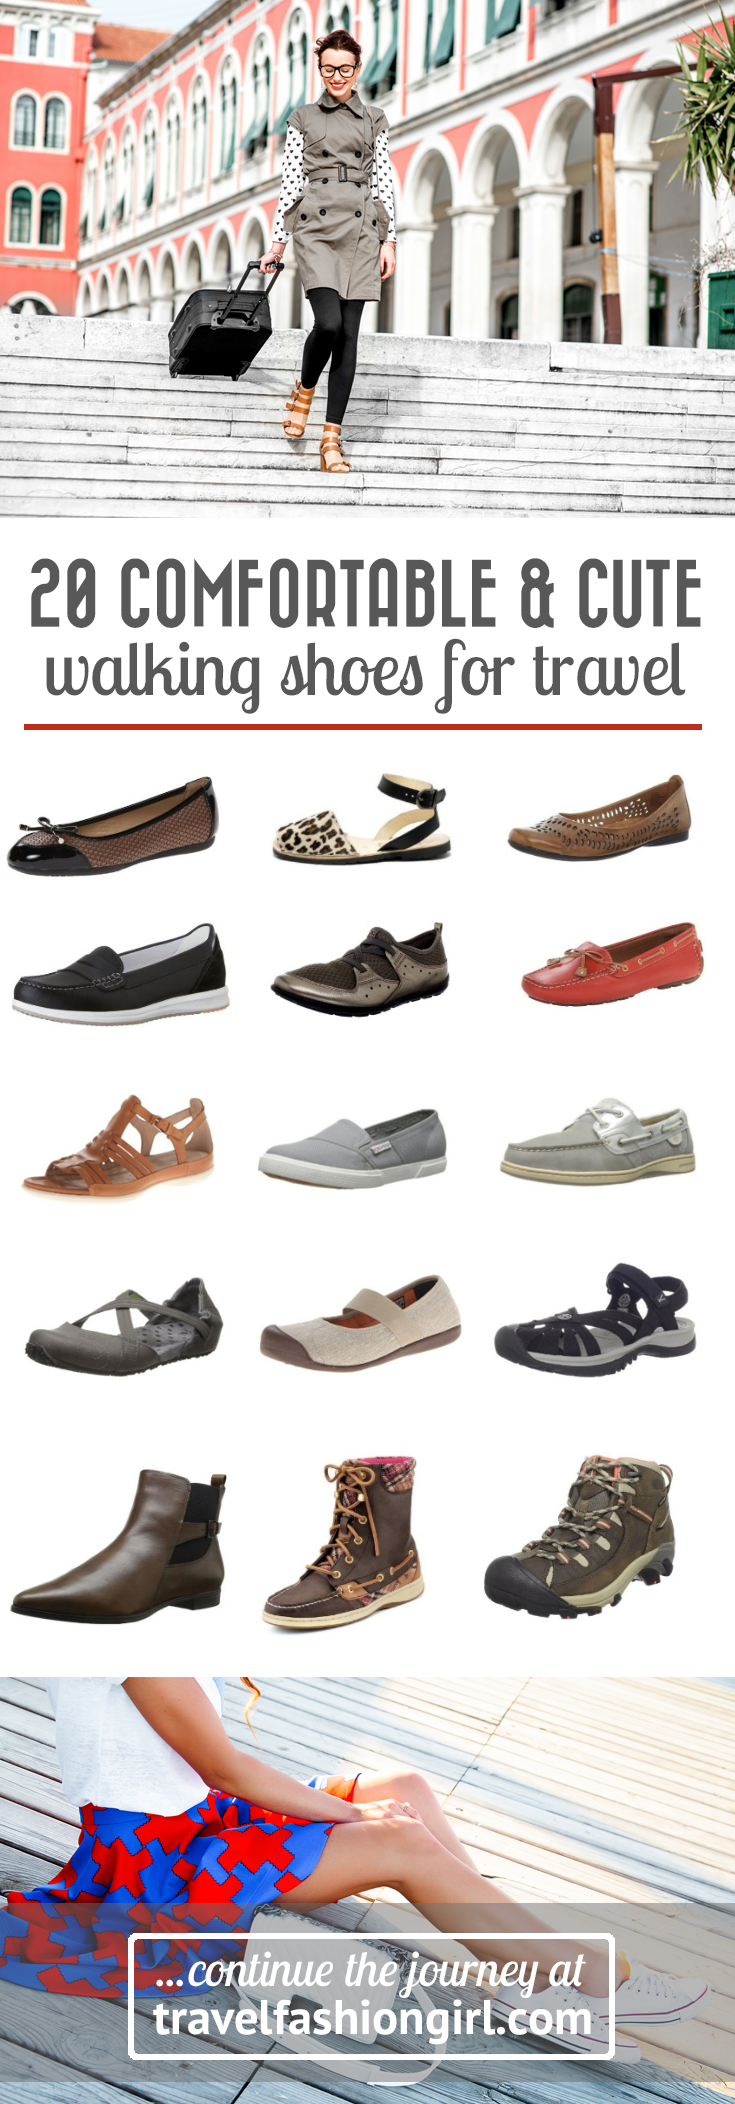 Comfortable Womens Walking Shoes For